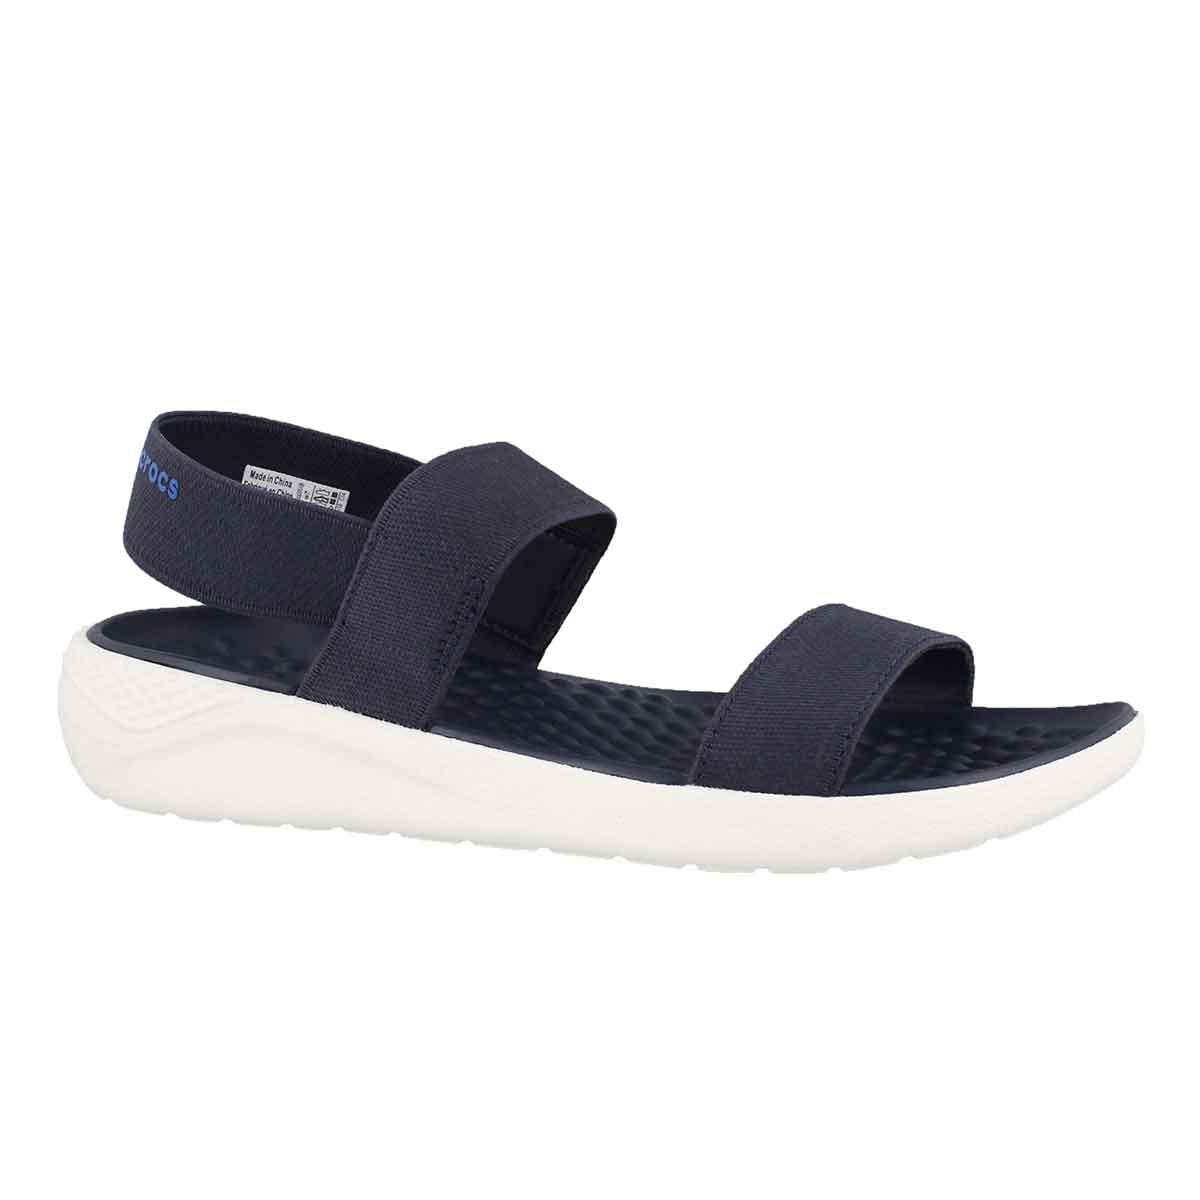 Women's LITERIDE navy/white casual sandals